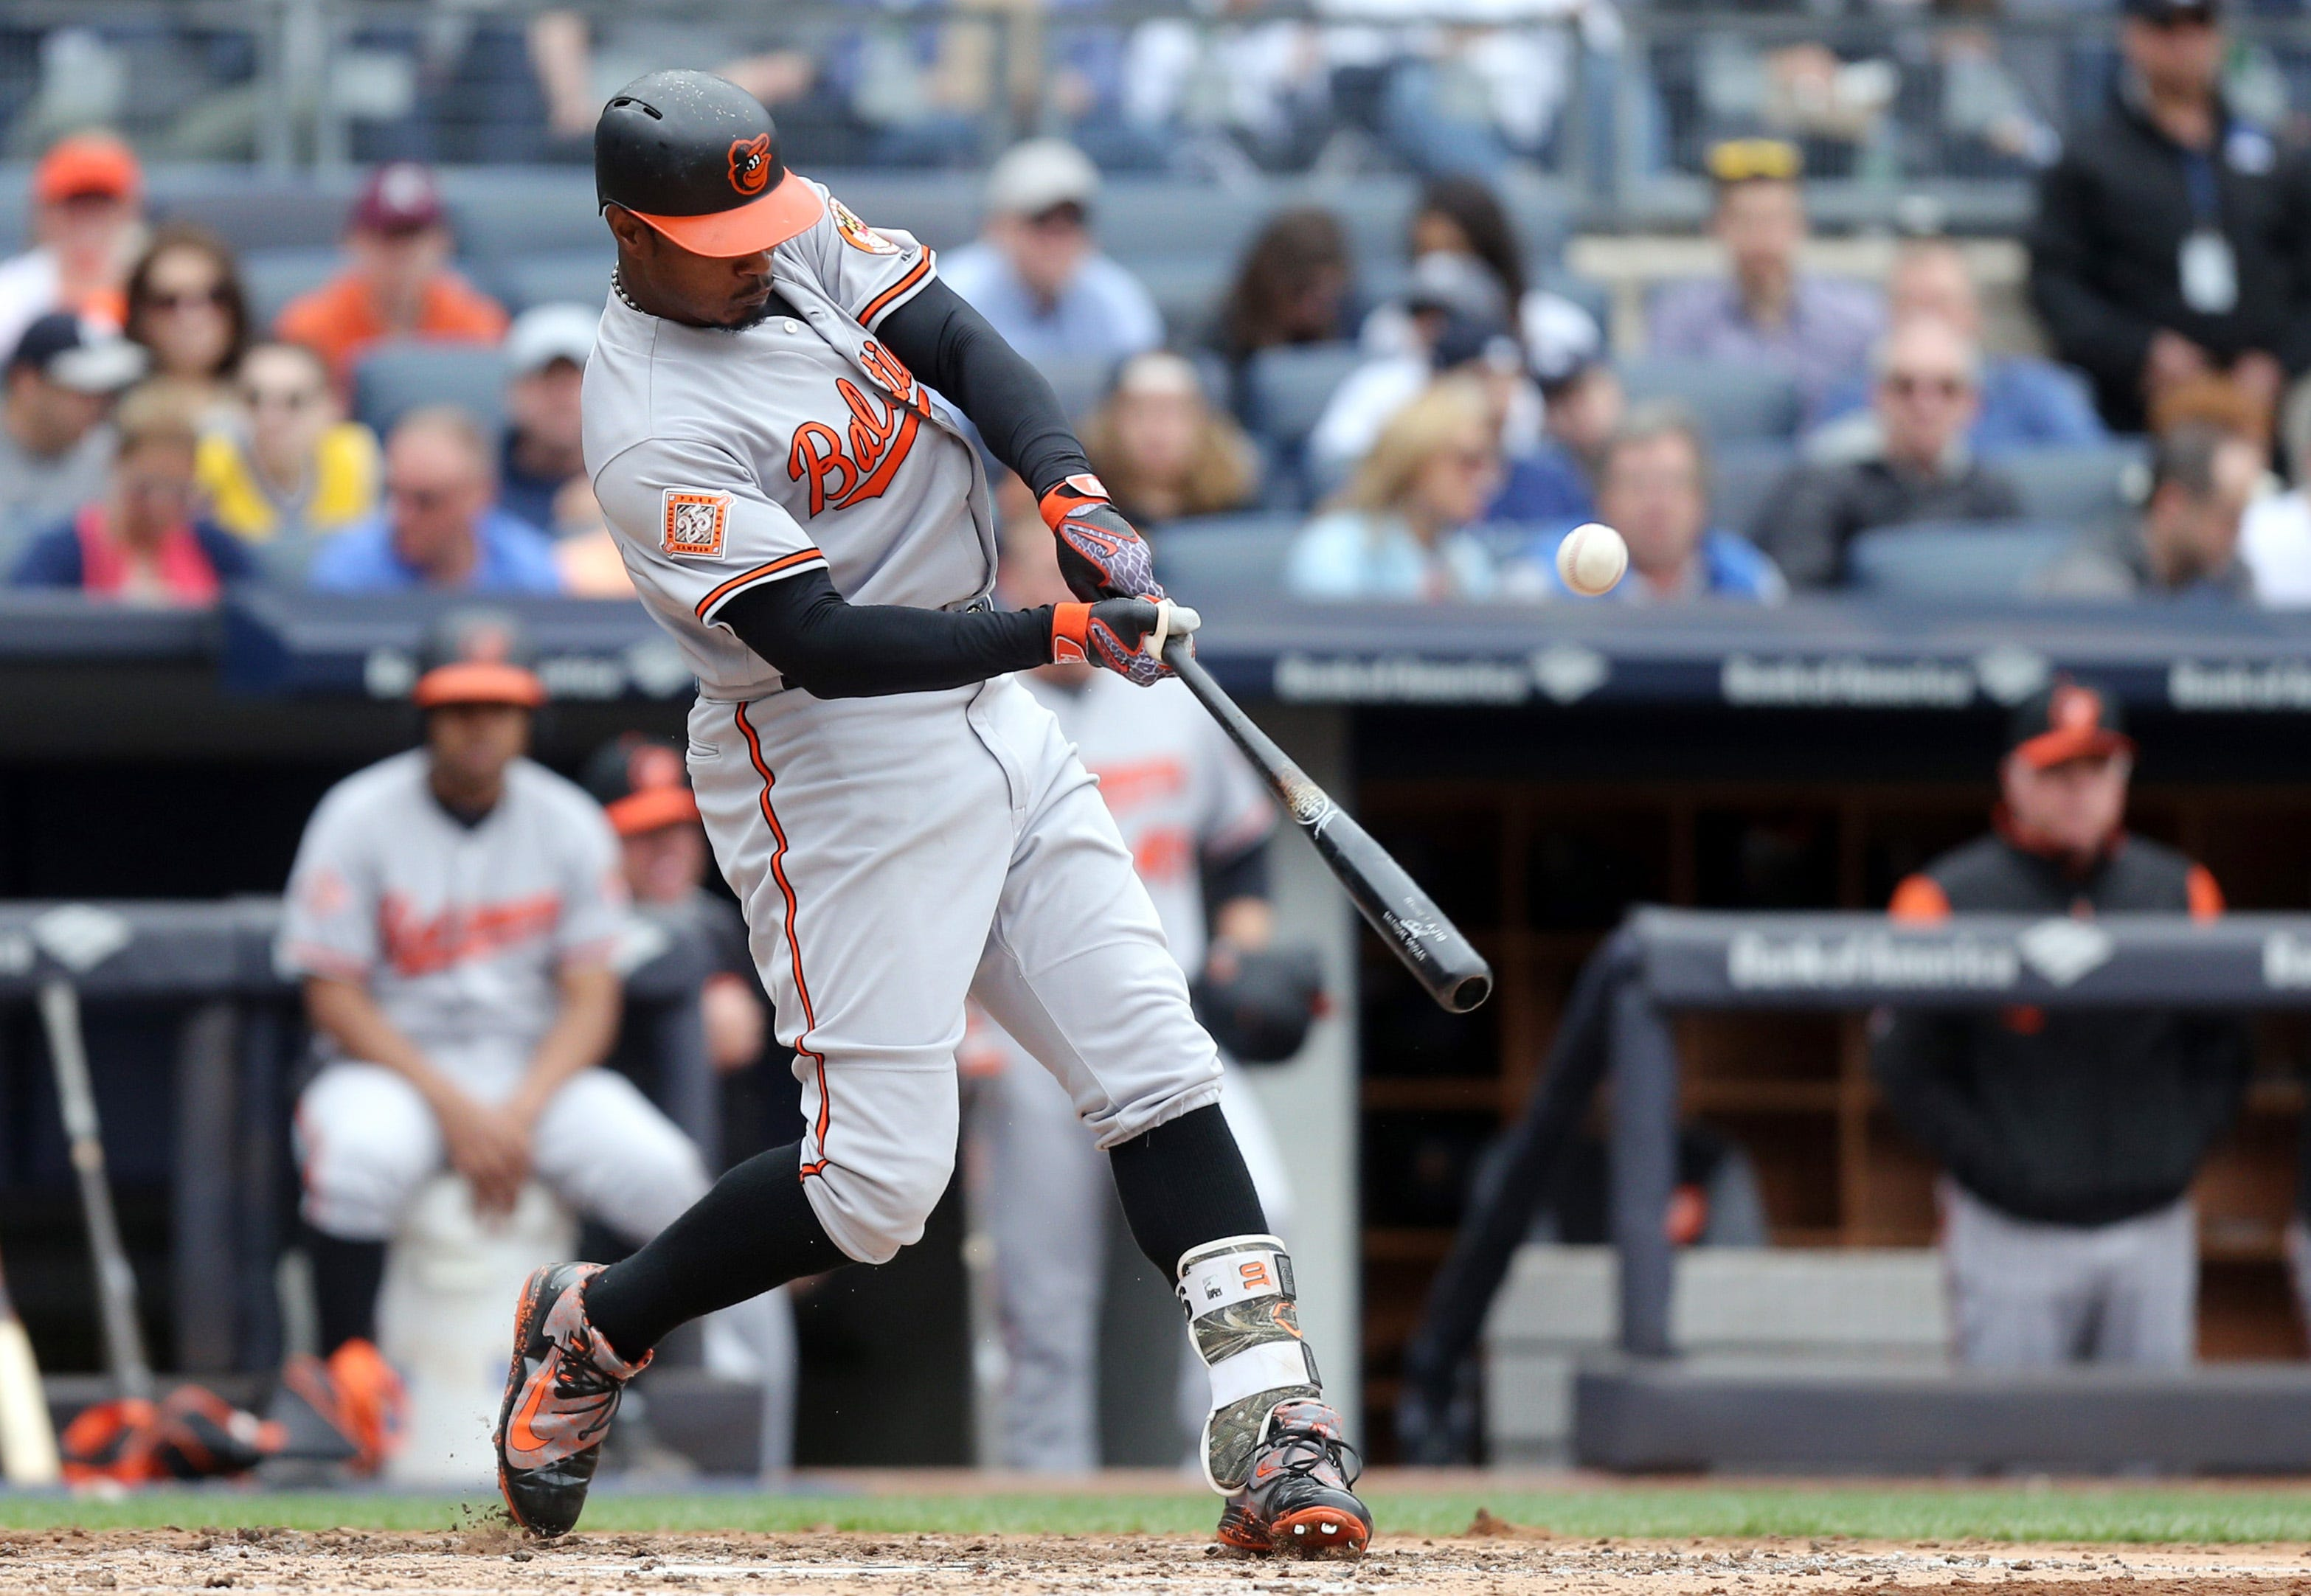 636292771782704378-USATSI-10037188 Orioles' Adam Jones berated by racist taunts at Fenway Park